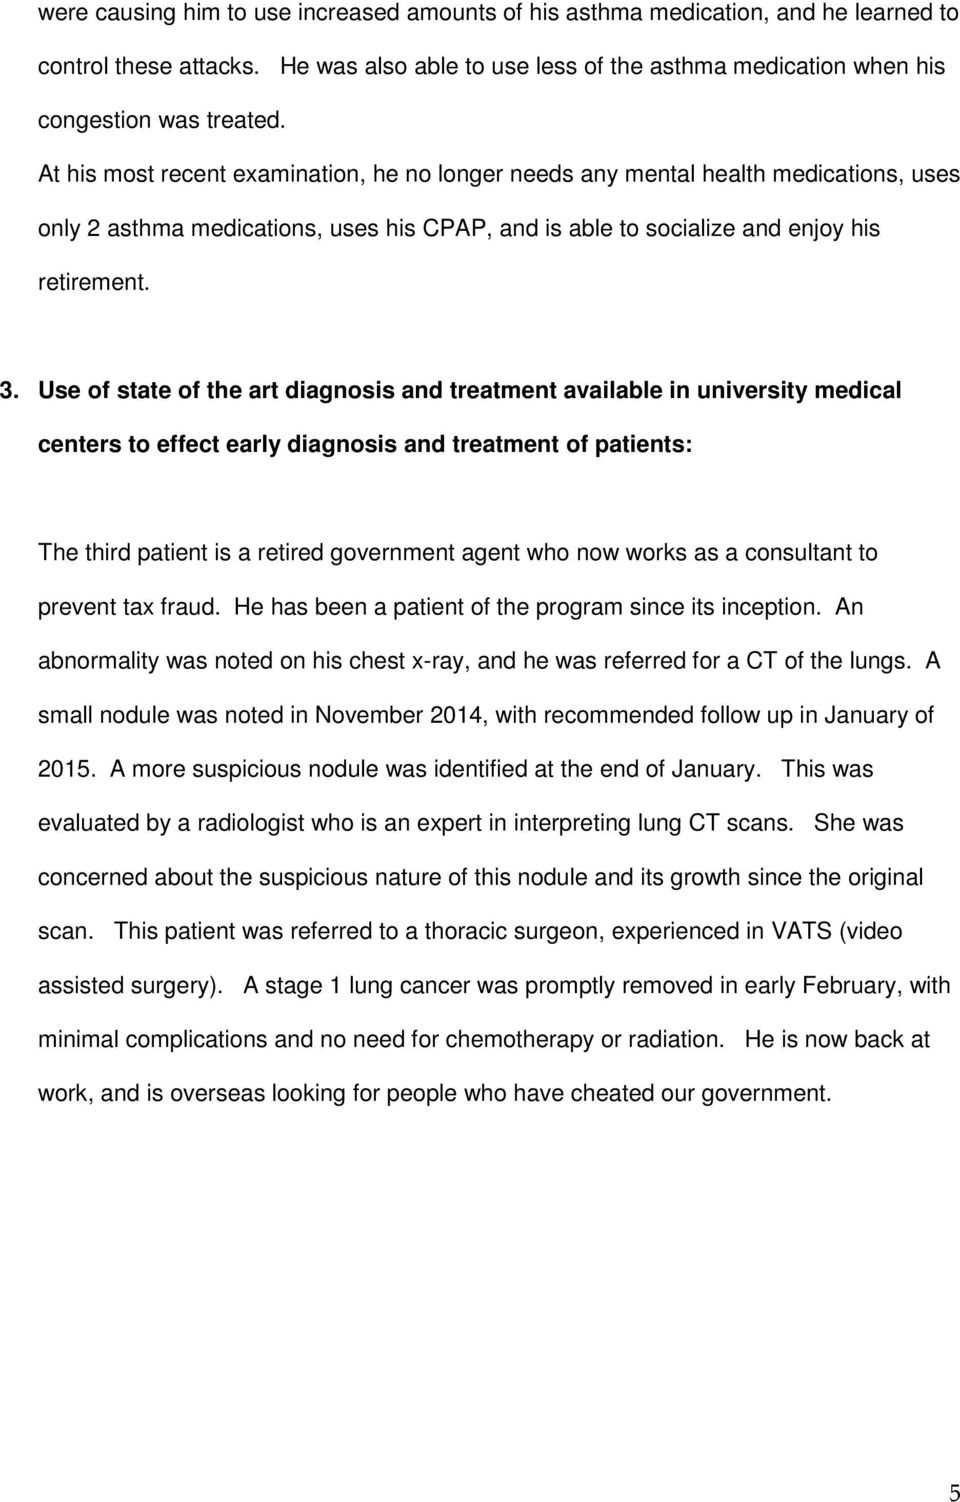 Use of state of the art diagnosis and treatment available in university medical centers to effect early diagnosis and treatment of patients: The third patient is a retired government agent who now